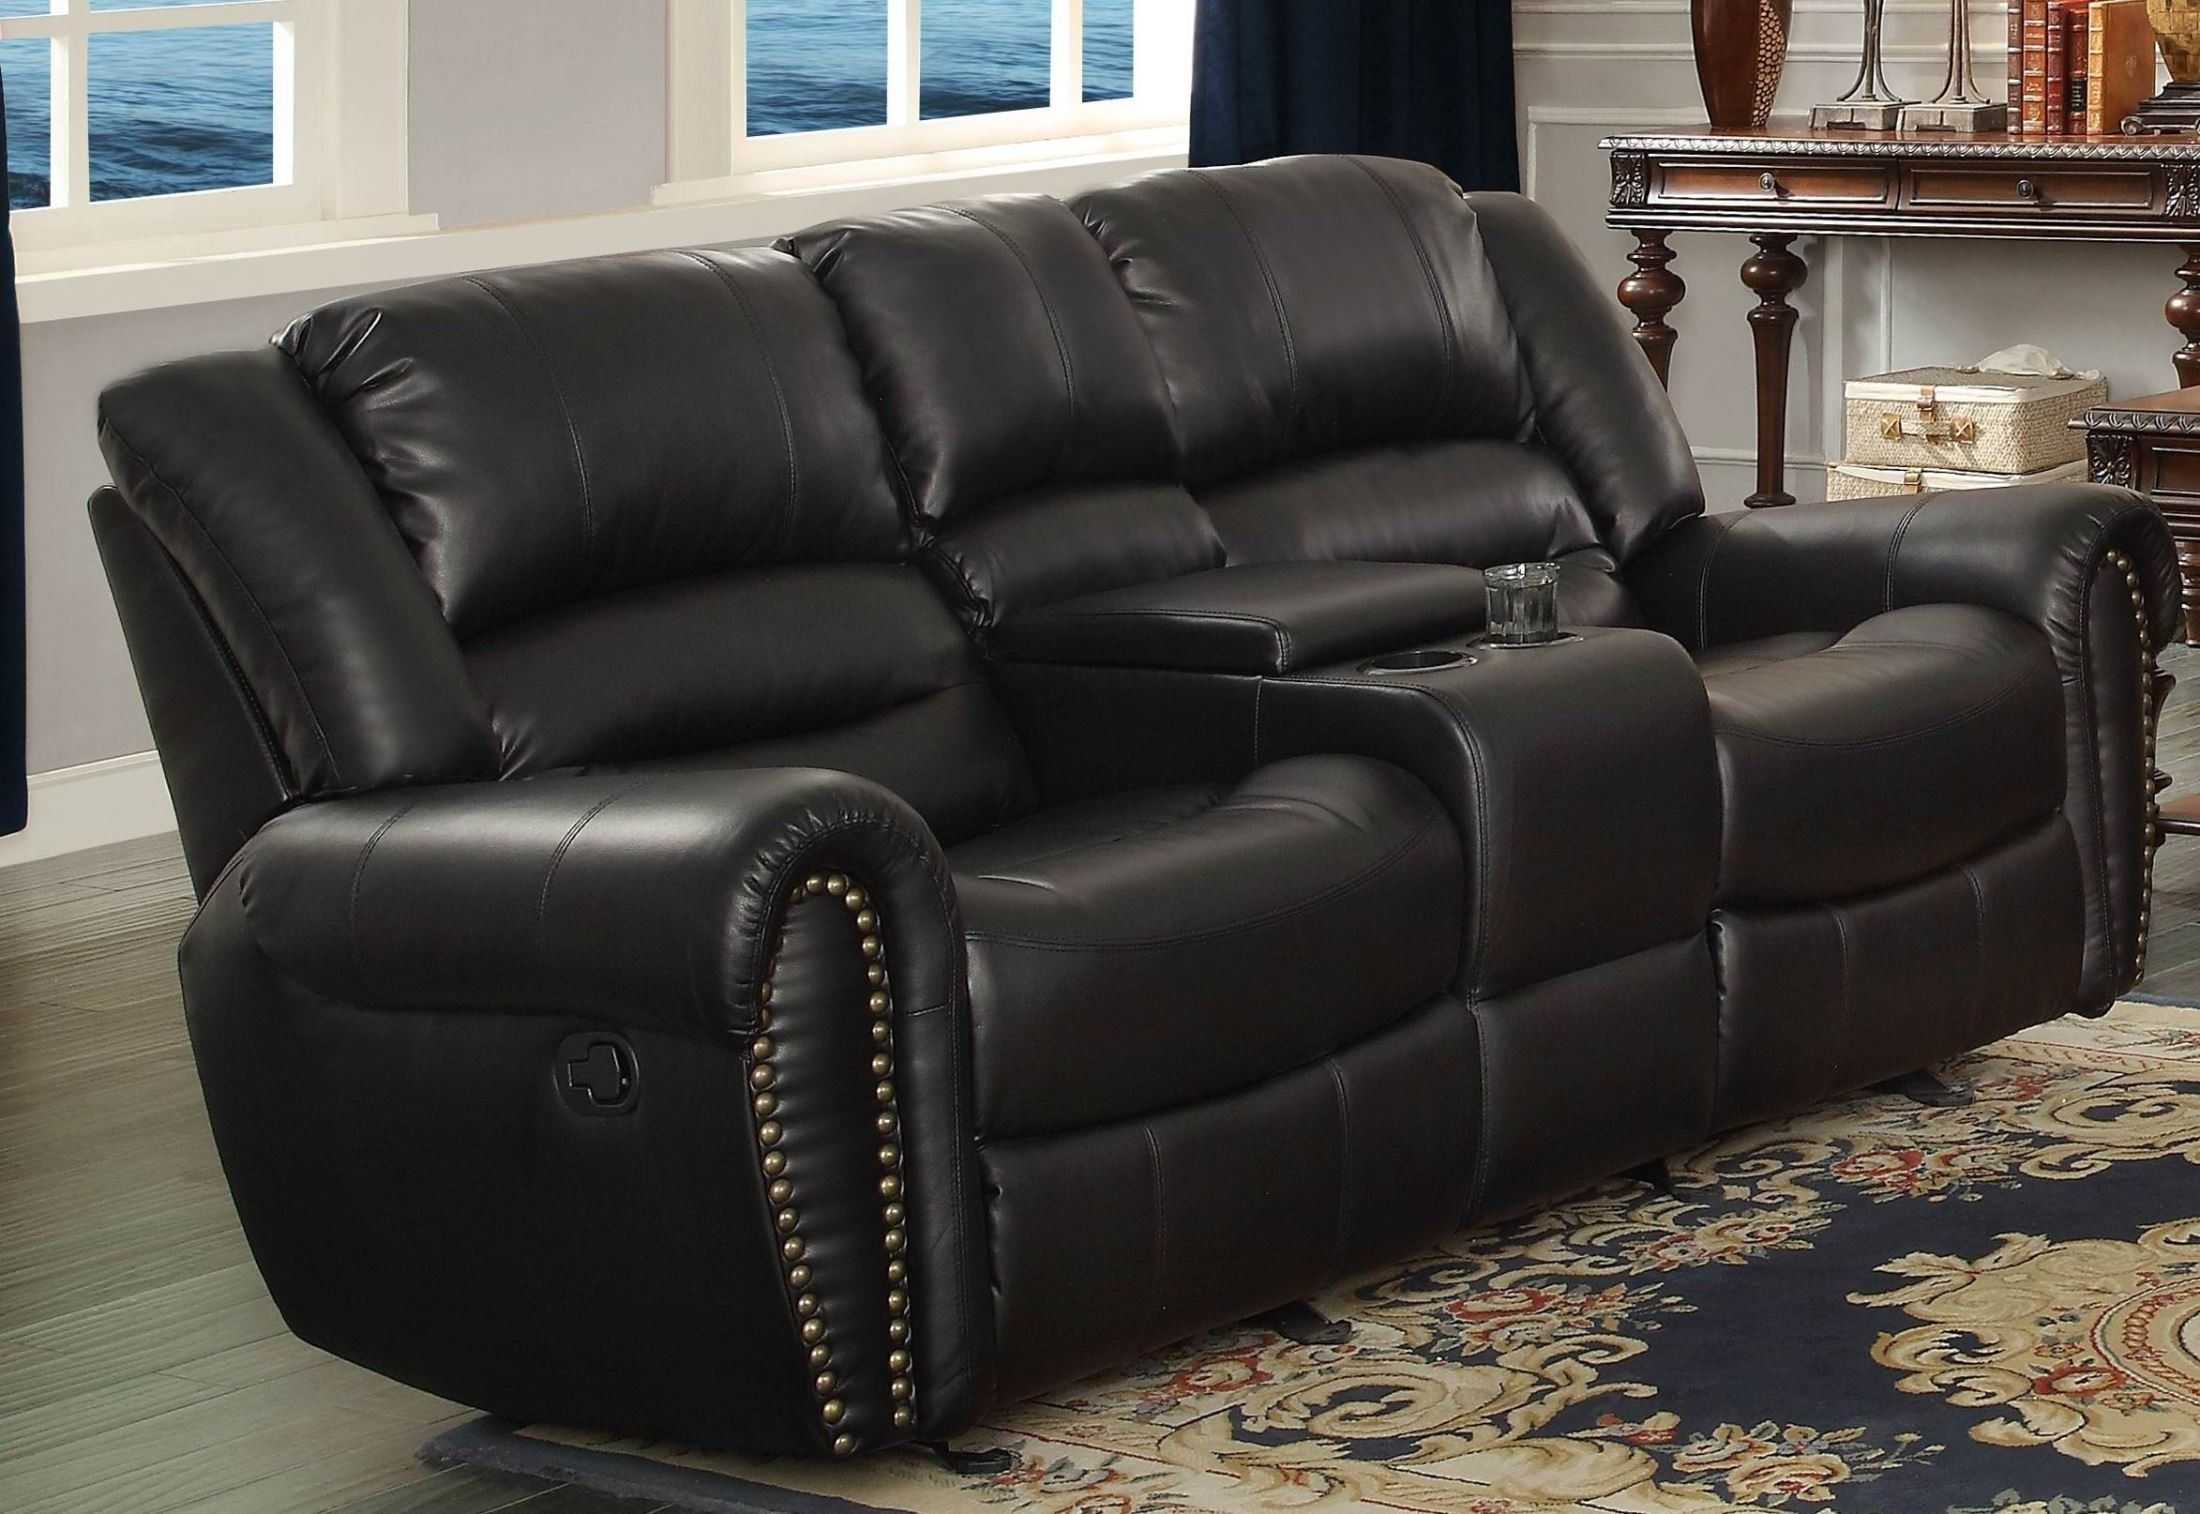 Center Hill Black Double Glider Reclining Loveseat With Console From Homelegance 9668blk 2